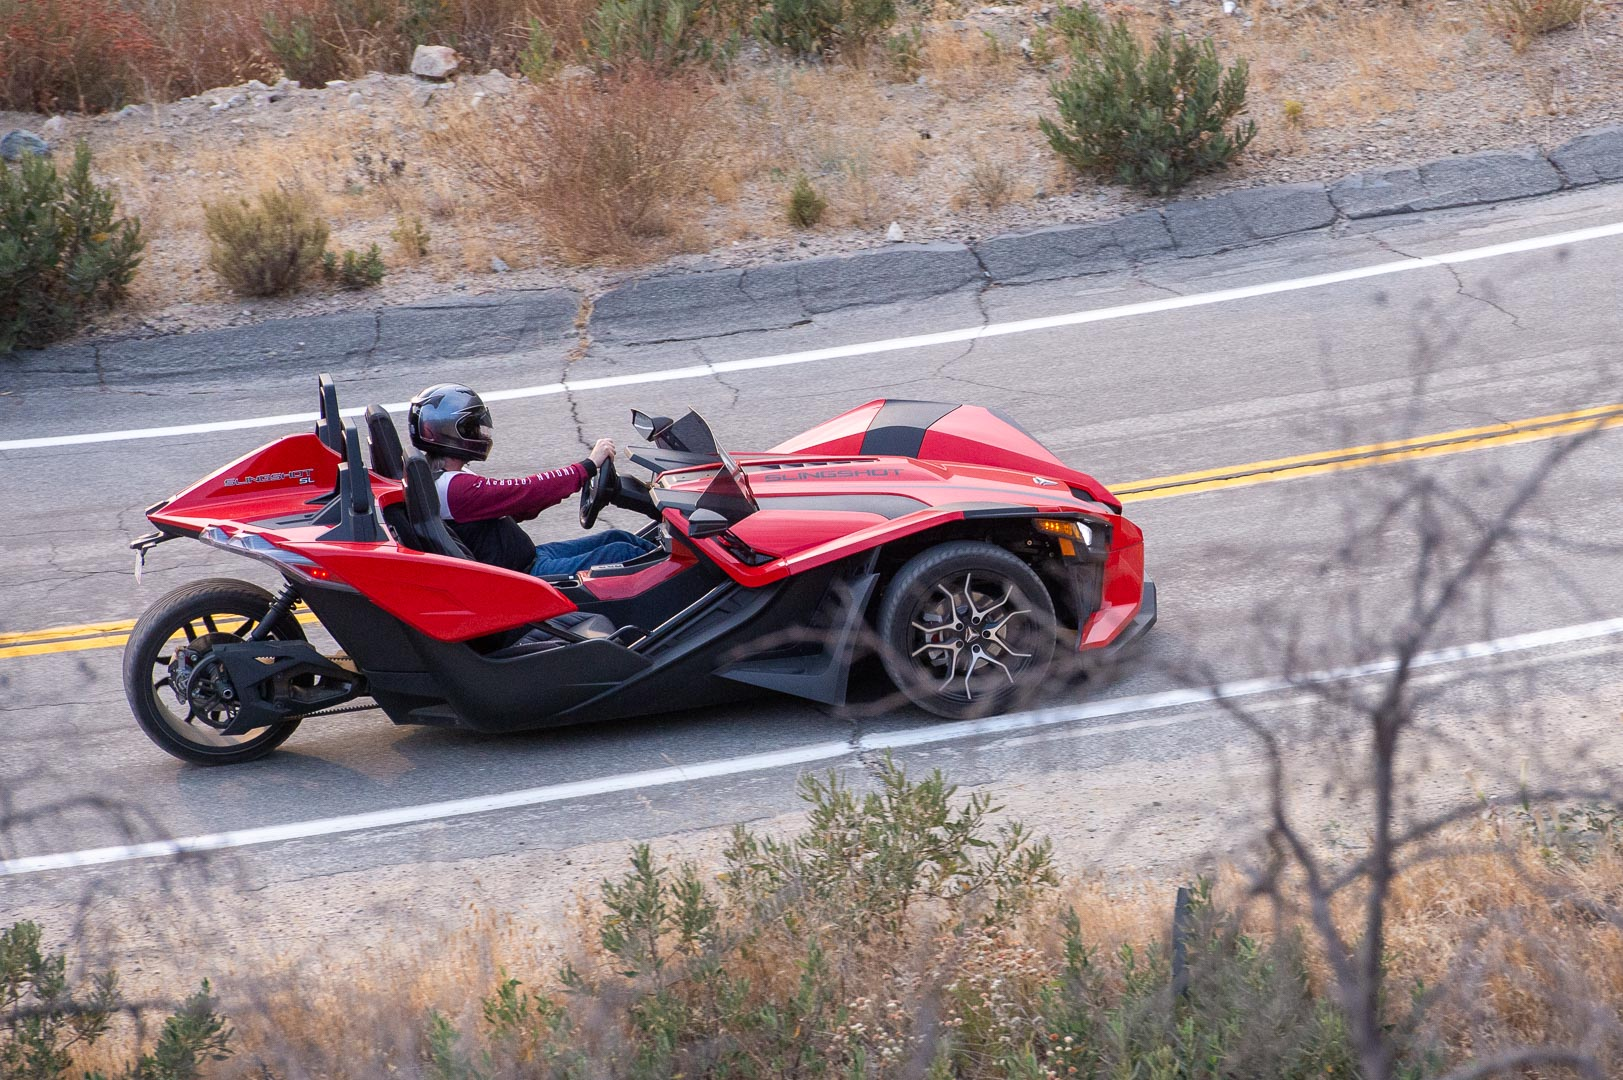 2020 Polaris Slingshot SL Review: Automatic transmission